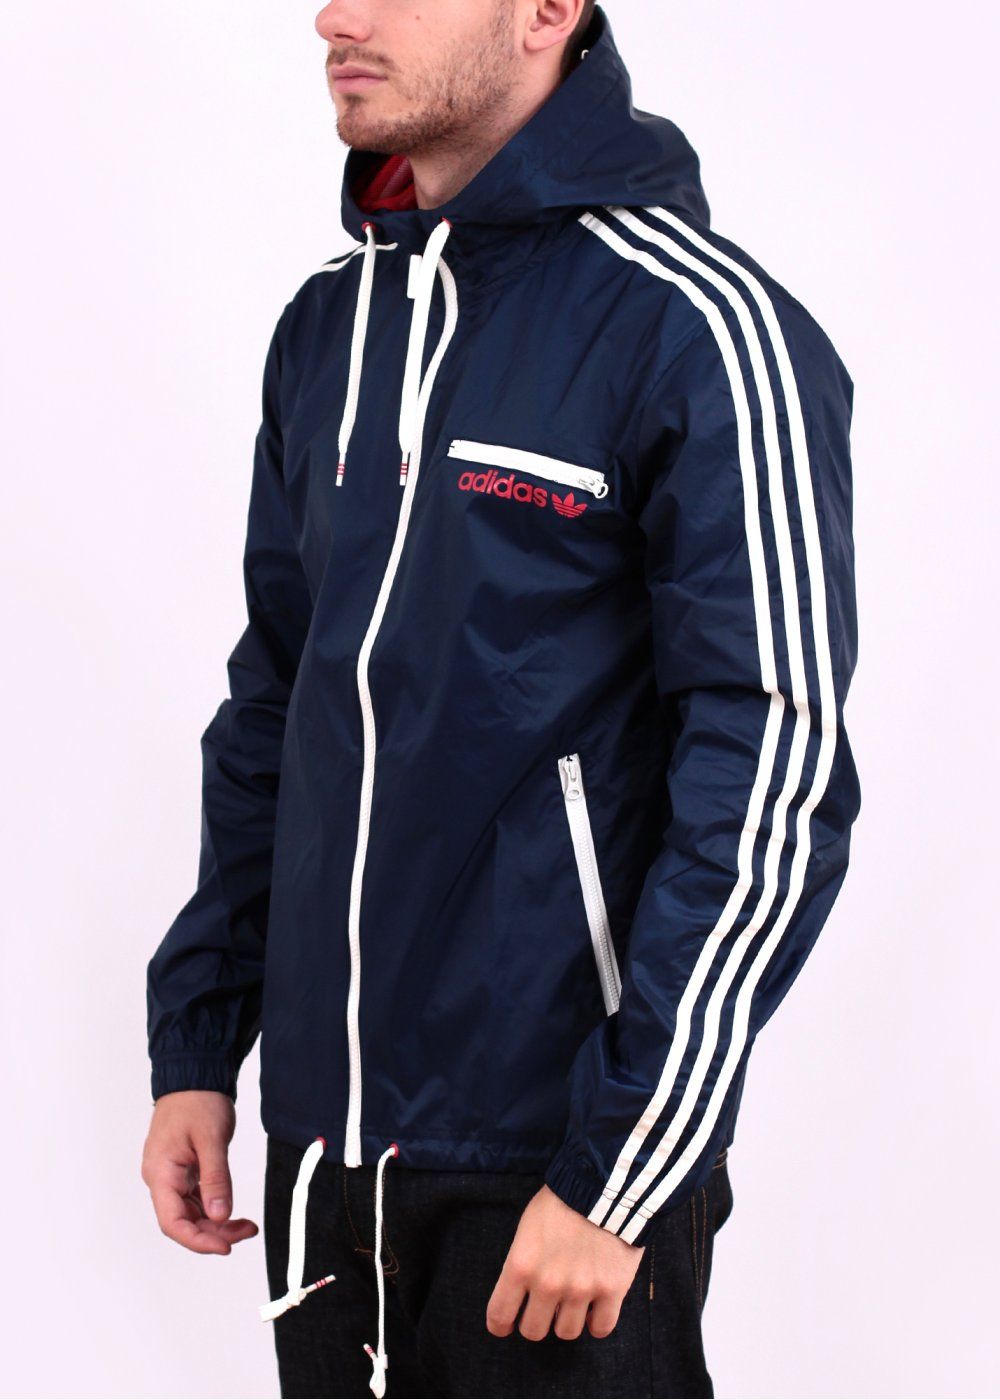 adidas originals rainproof jacket navy. Black Bedroom Furniture Sets. Home Design Ideas